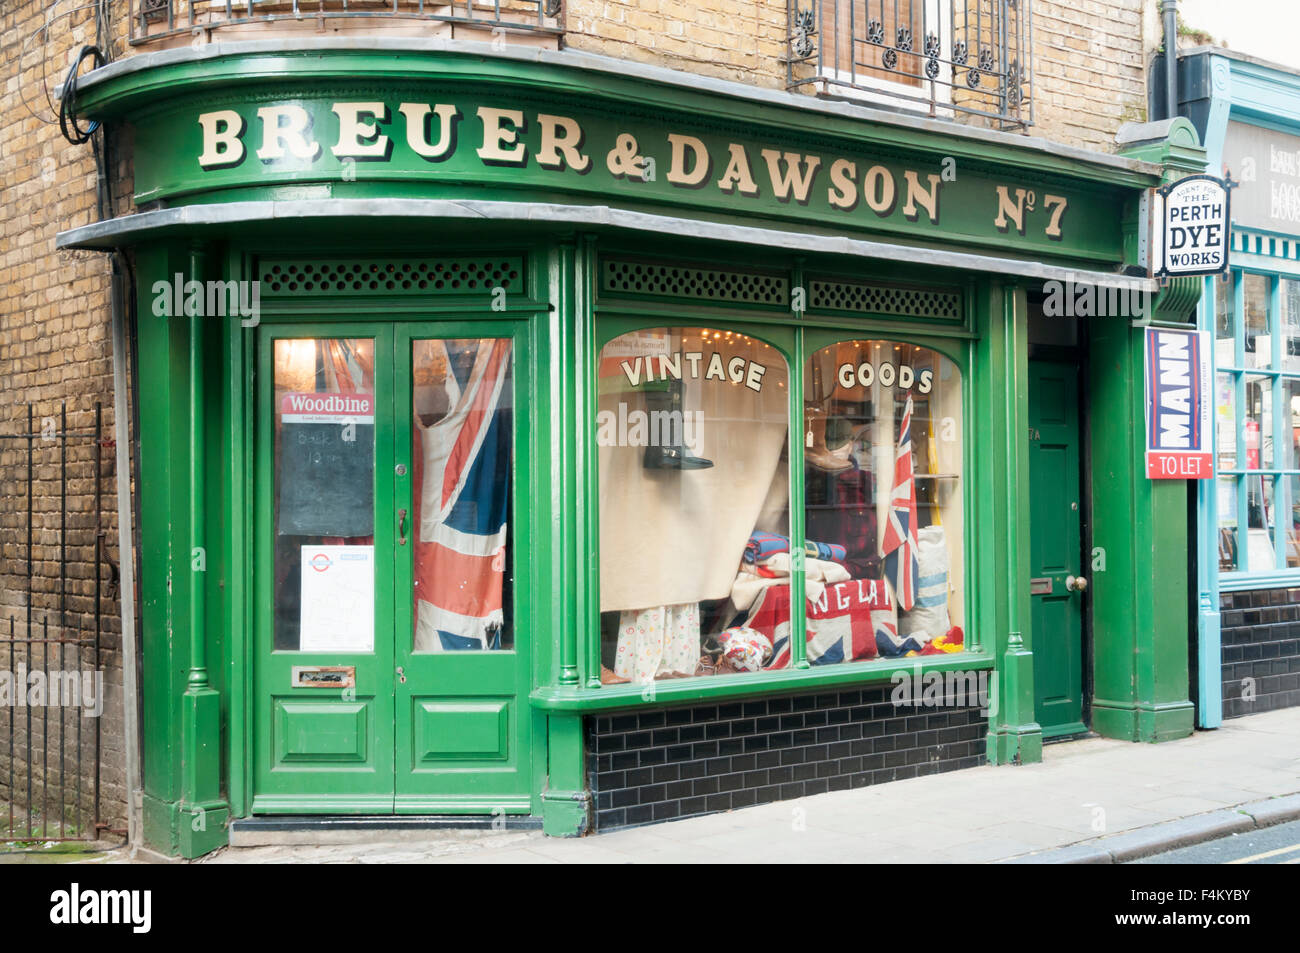 Breuer & Dawson in Margate Old Town. - Stock Image